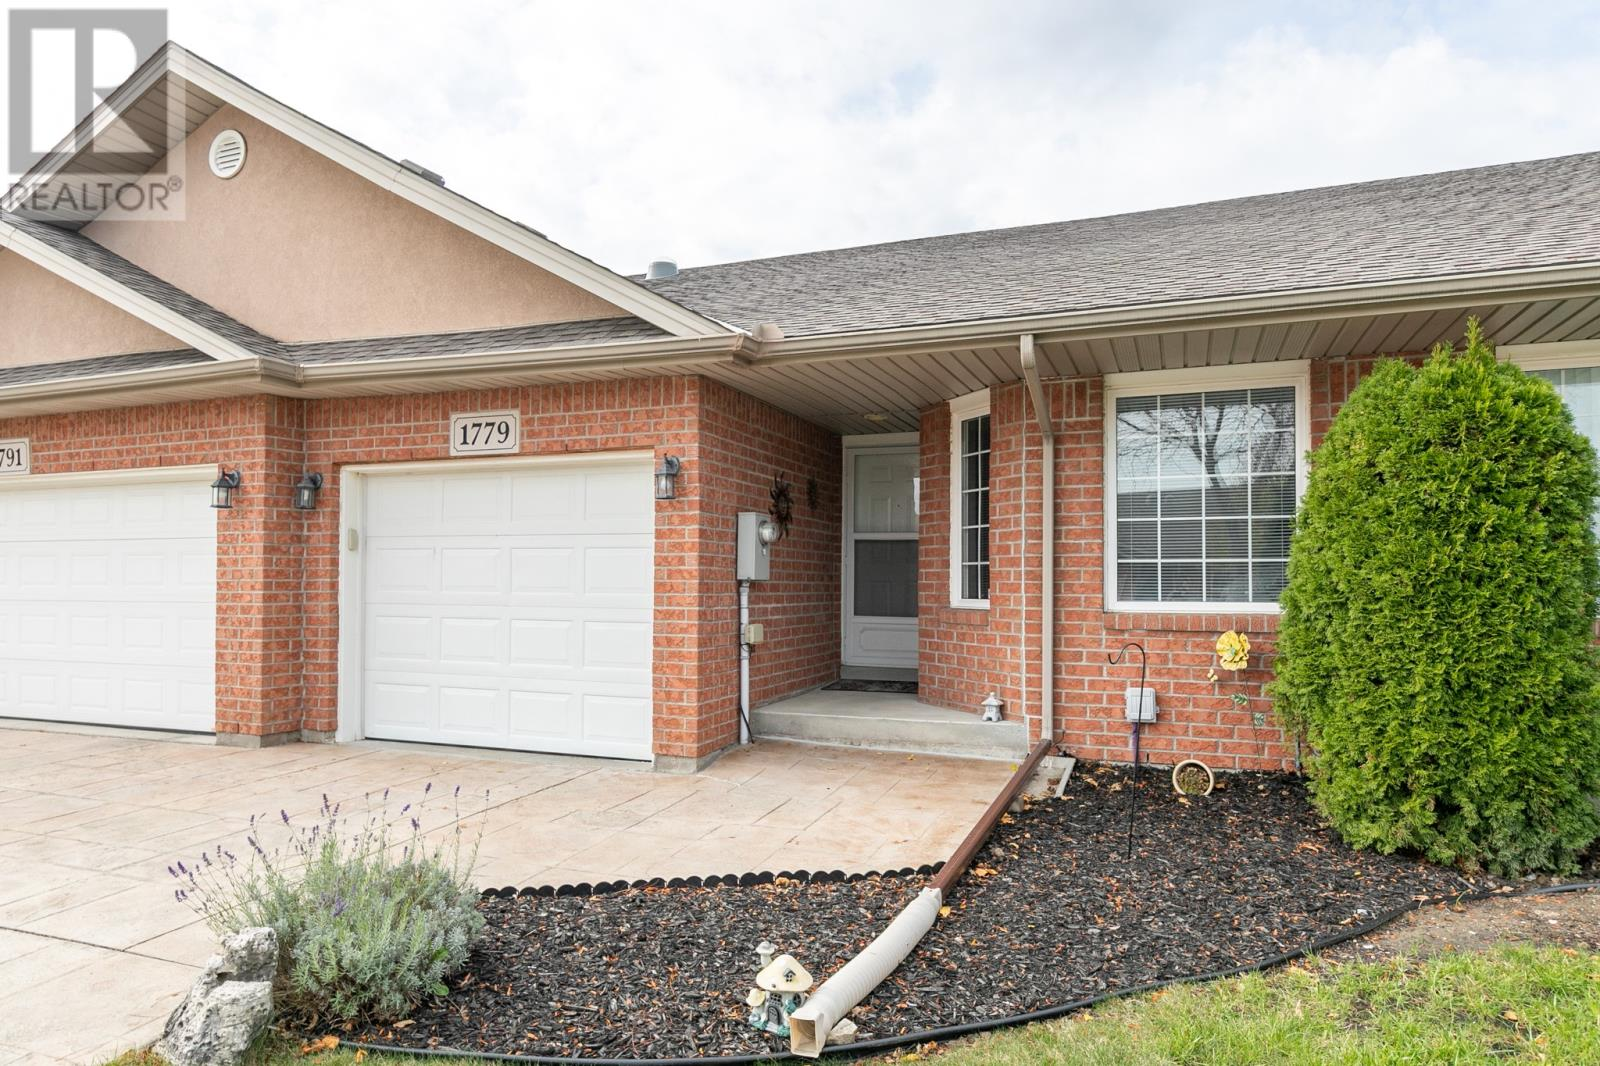 Removed: 1779 Chateau, Windsor, ON - Removed on 2019-11-16 06:00:12